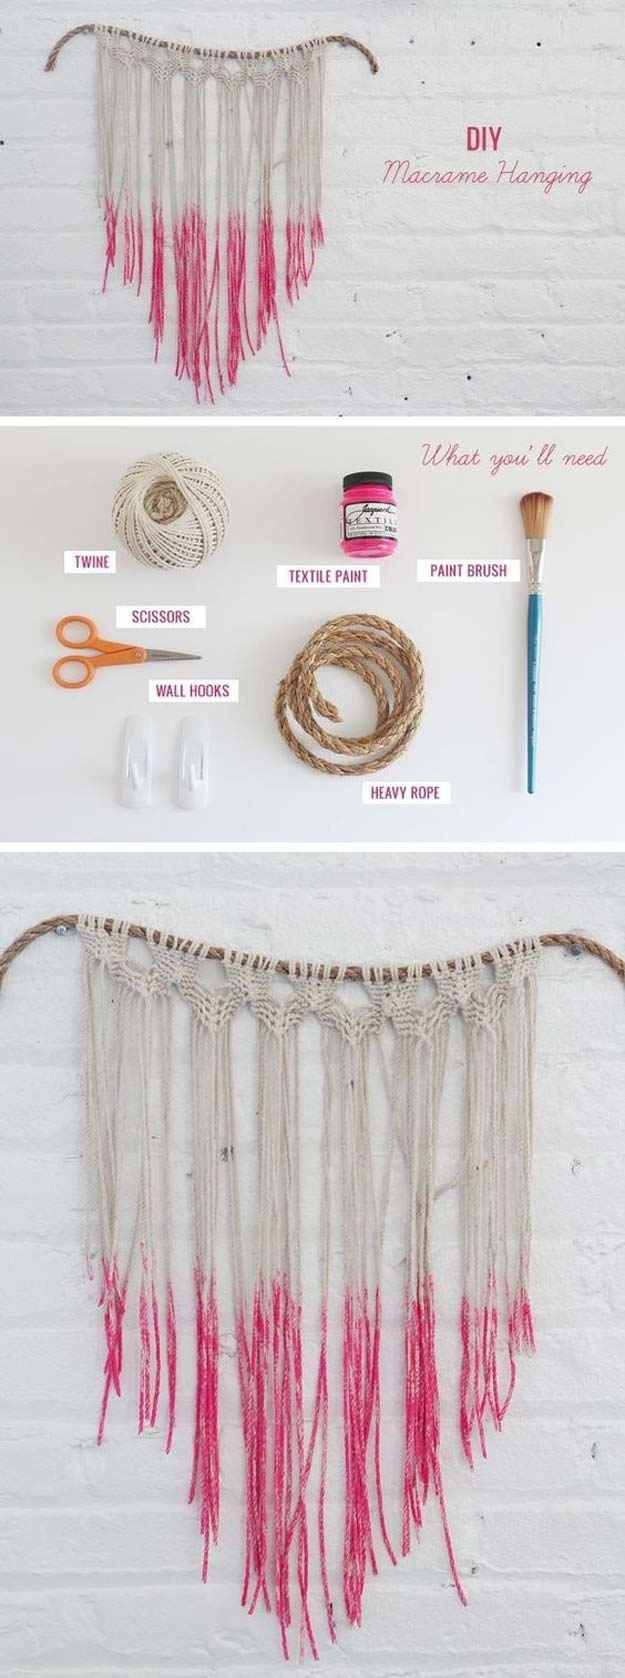 Pink DIY Room Decor Ideas - DIY Macrame Hanging - Cool Pink Bedroom Crafts and Projects for Teens, Girls, Teenagers and Adults - Best Wall Art Ideas, Room Decorating Project Tutorials, Rugs, Lighting and Lamps, Bed Decor and Pillows #teencrafts #roomdecor #pink